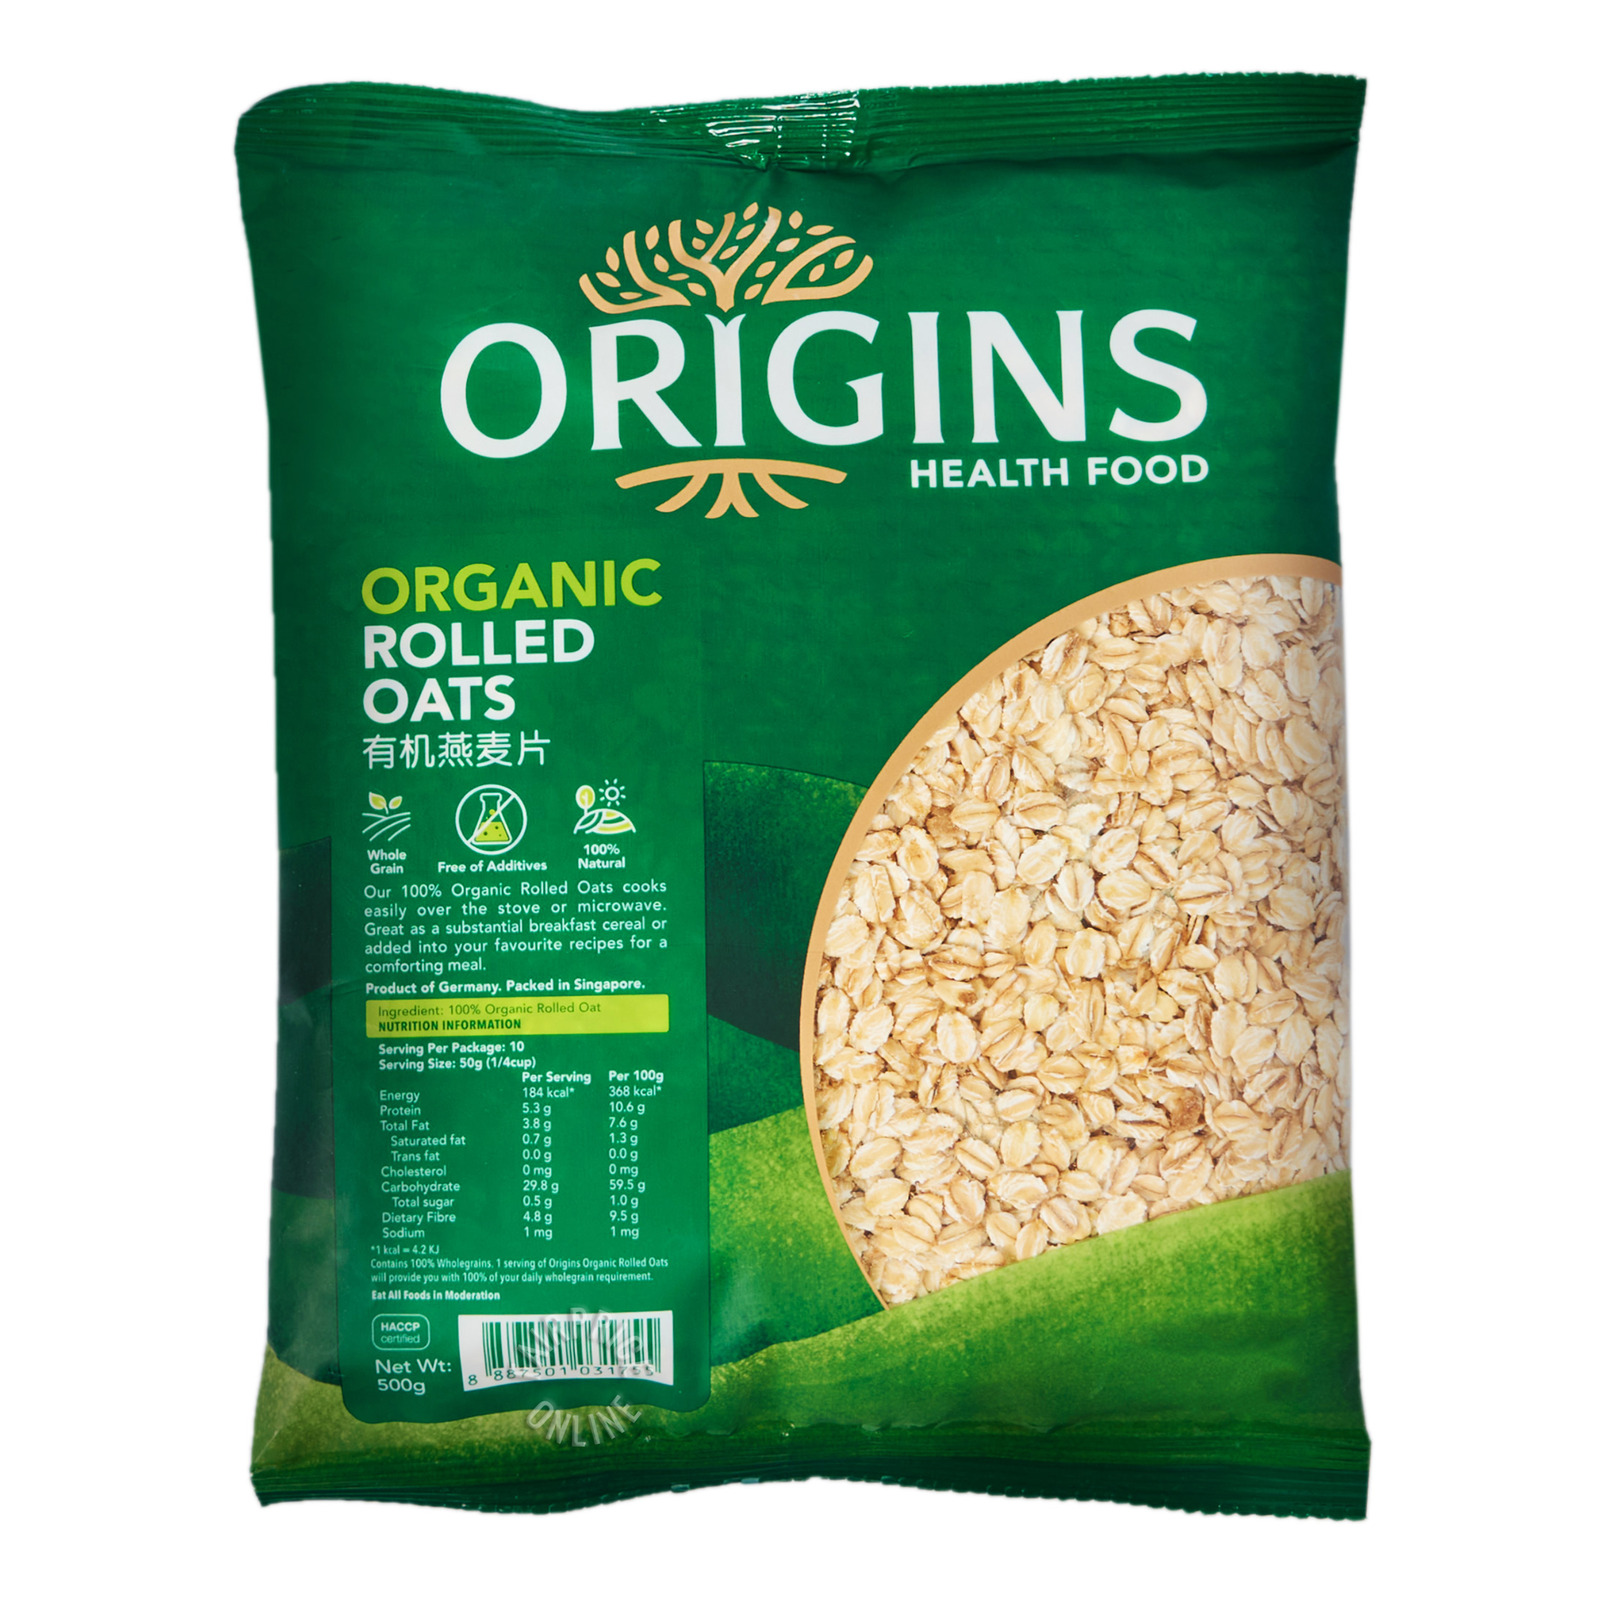 Origins Healthfood Organic Rolled Oats